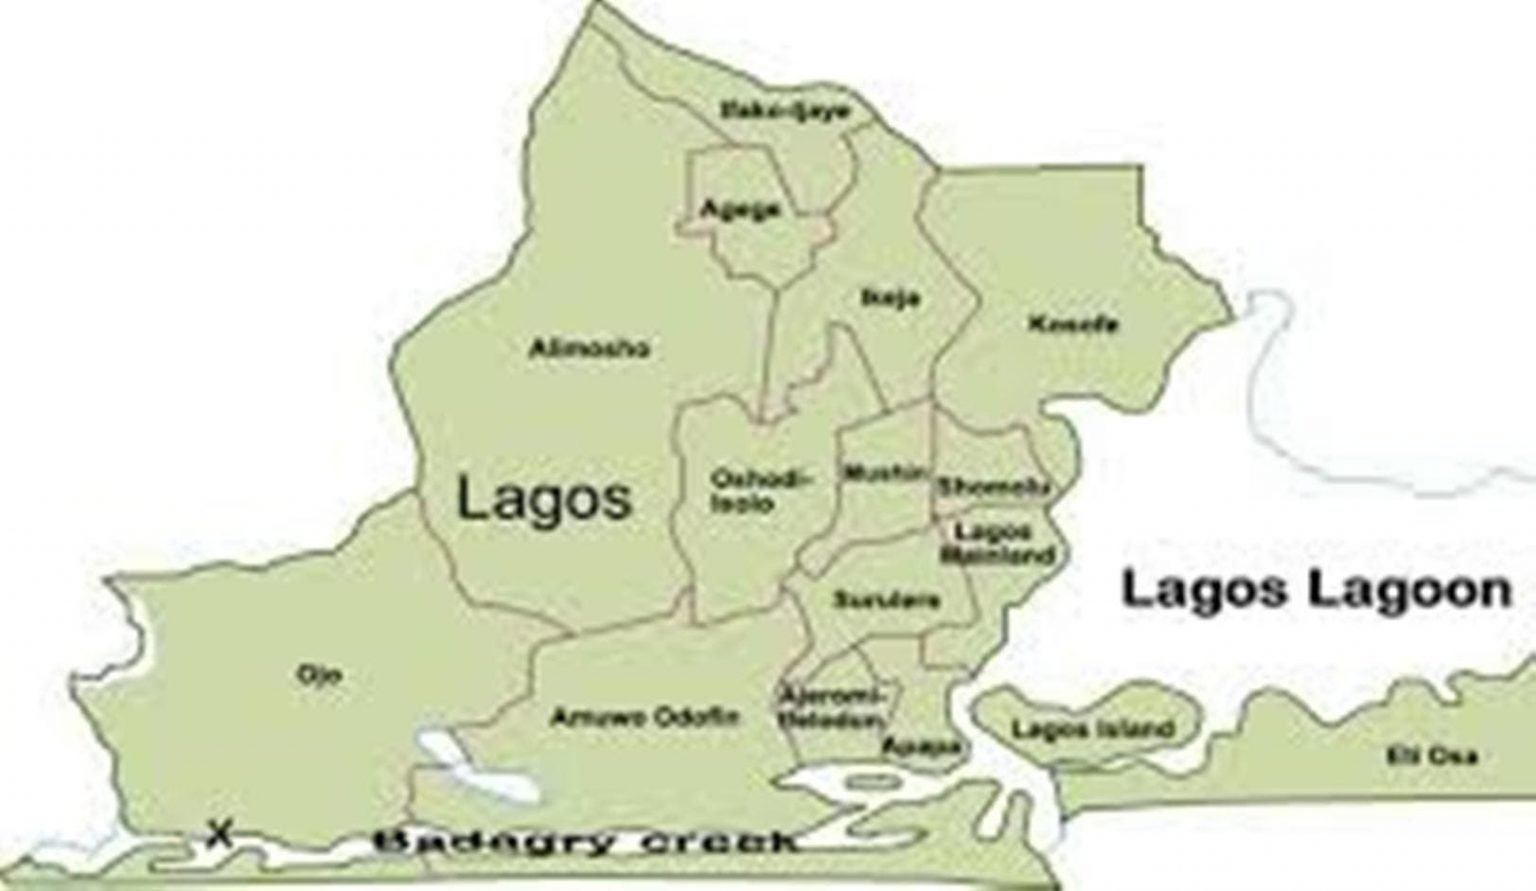 Lagos bye-election: Live updates, results, situation reports on senatorial poll